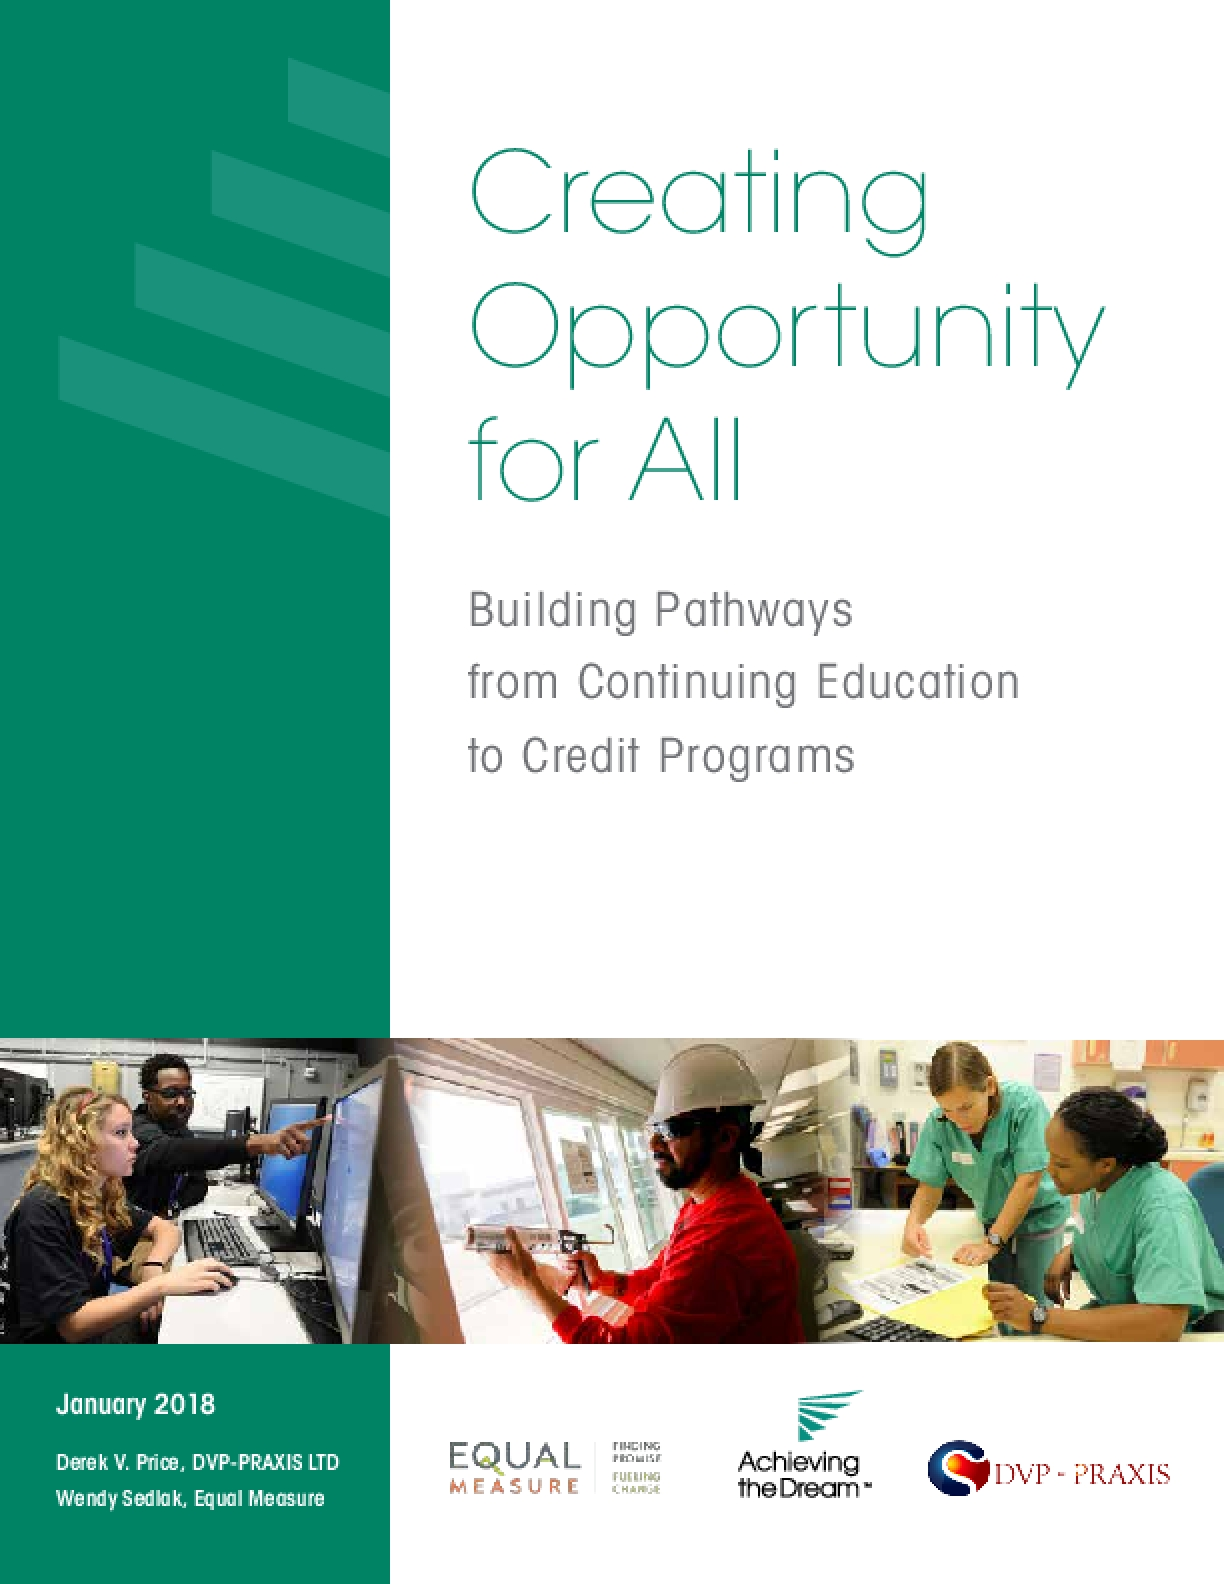 Creating Opportunity for All: Building Pathways from Continuing Education to Credit Programs